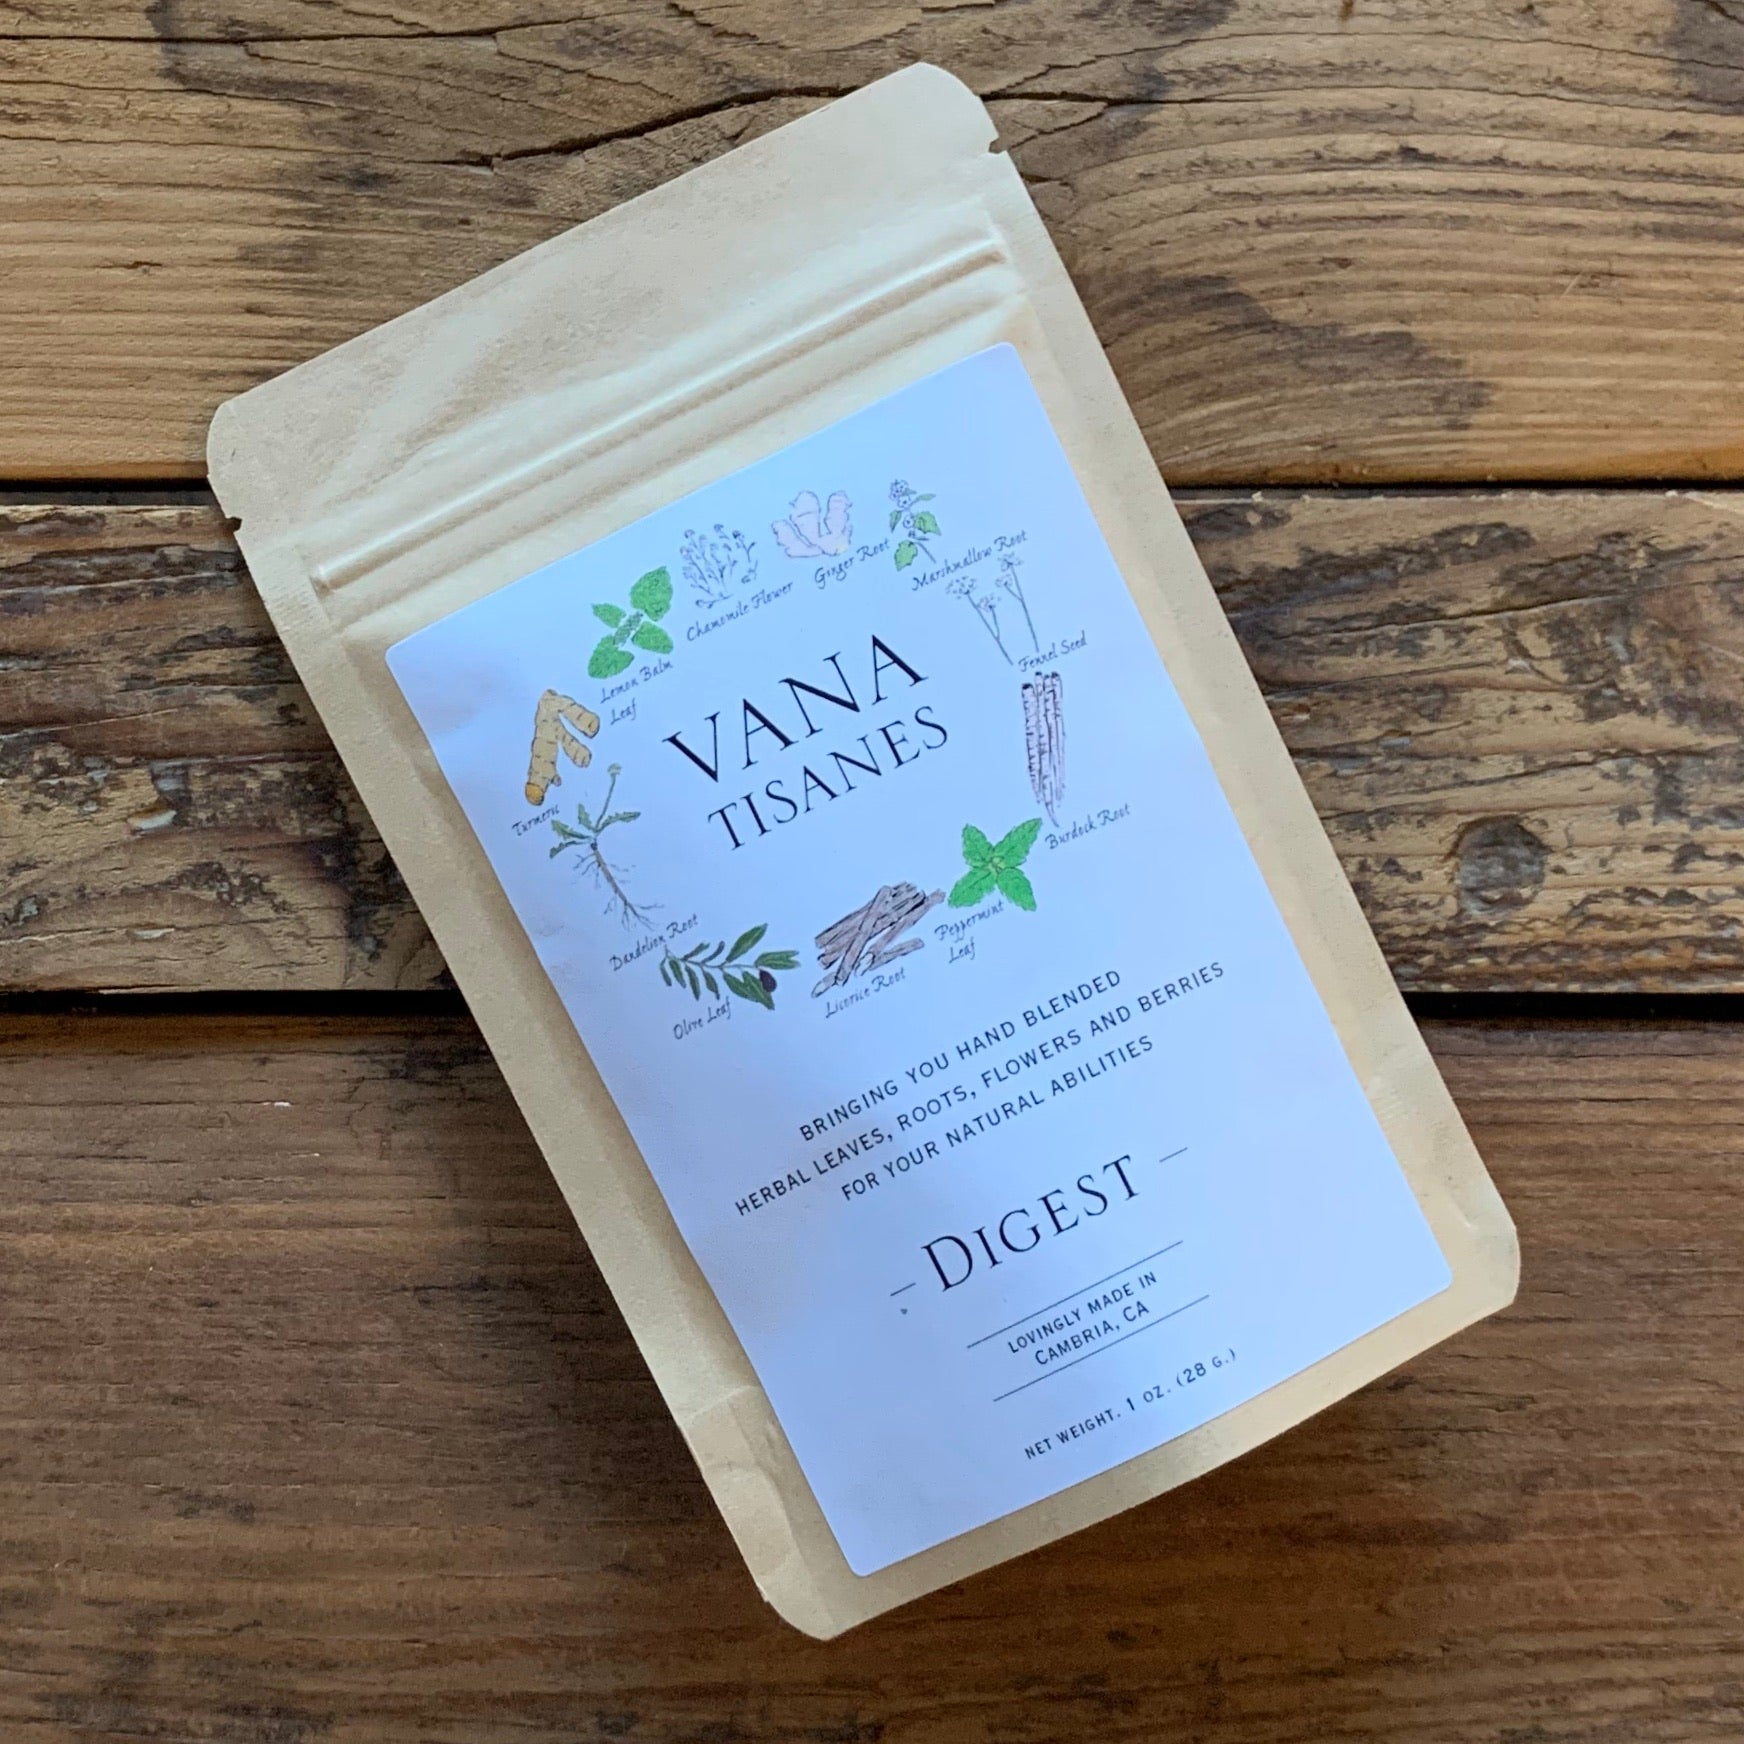 Herbal Loose Leaf Tea Blends by Vana Tisanes